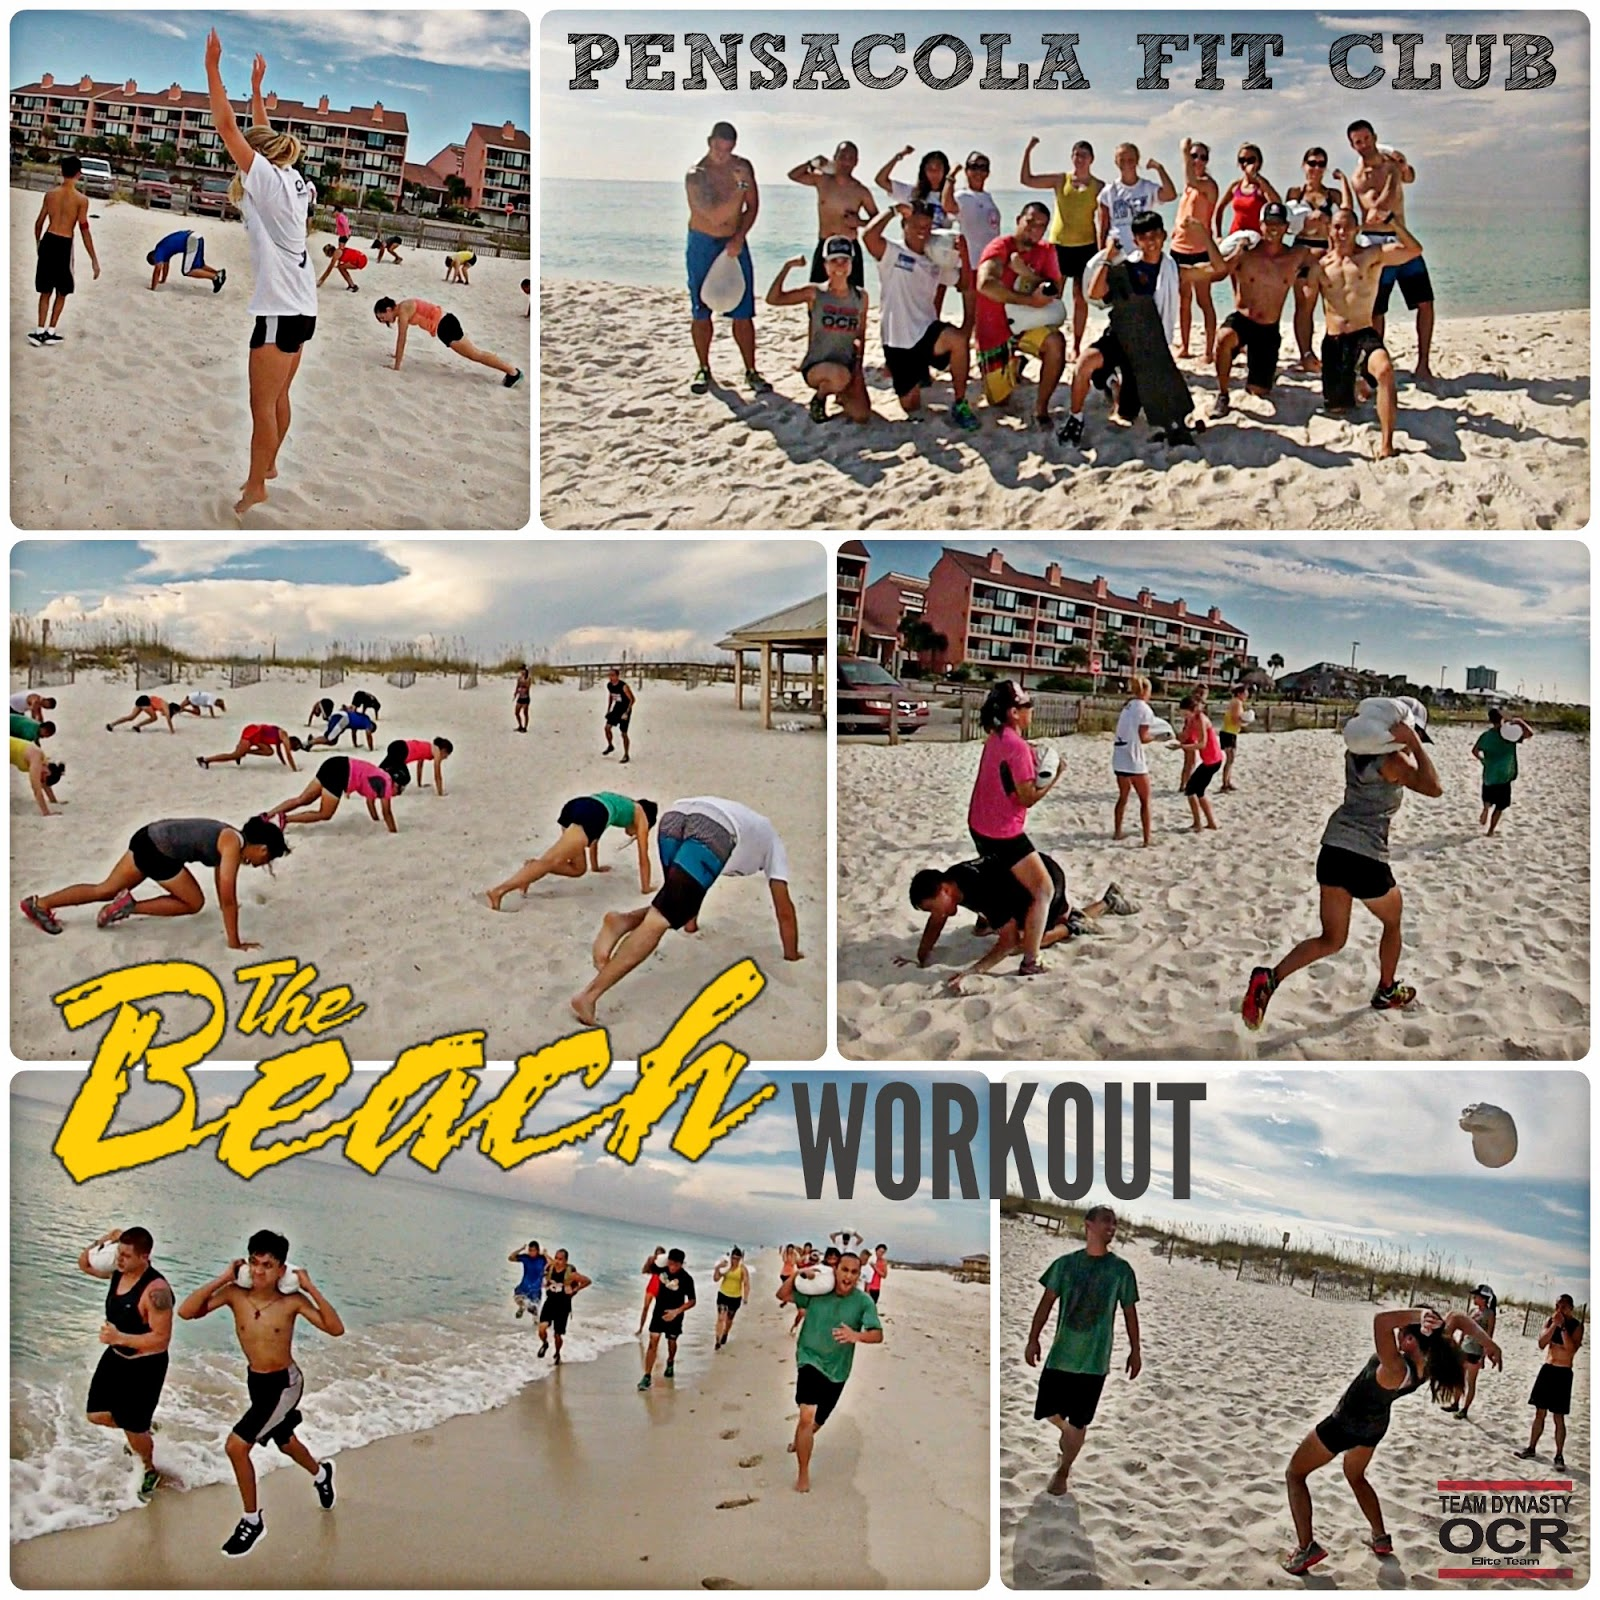 Pensacola Beach Workout - Pensacola Fit Club